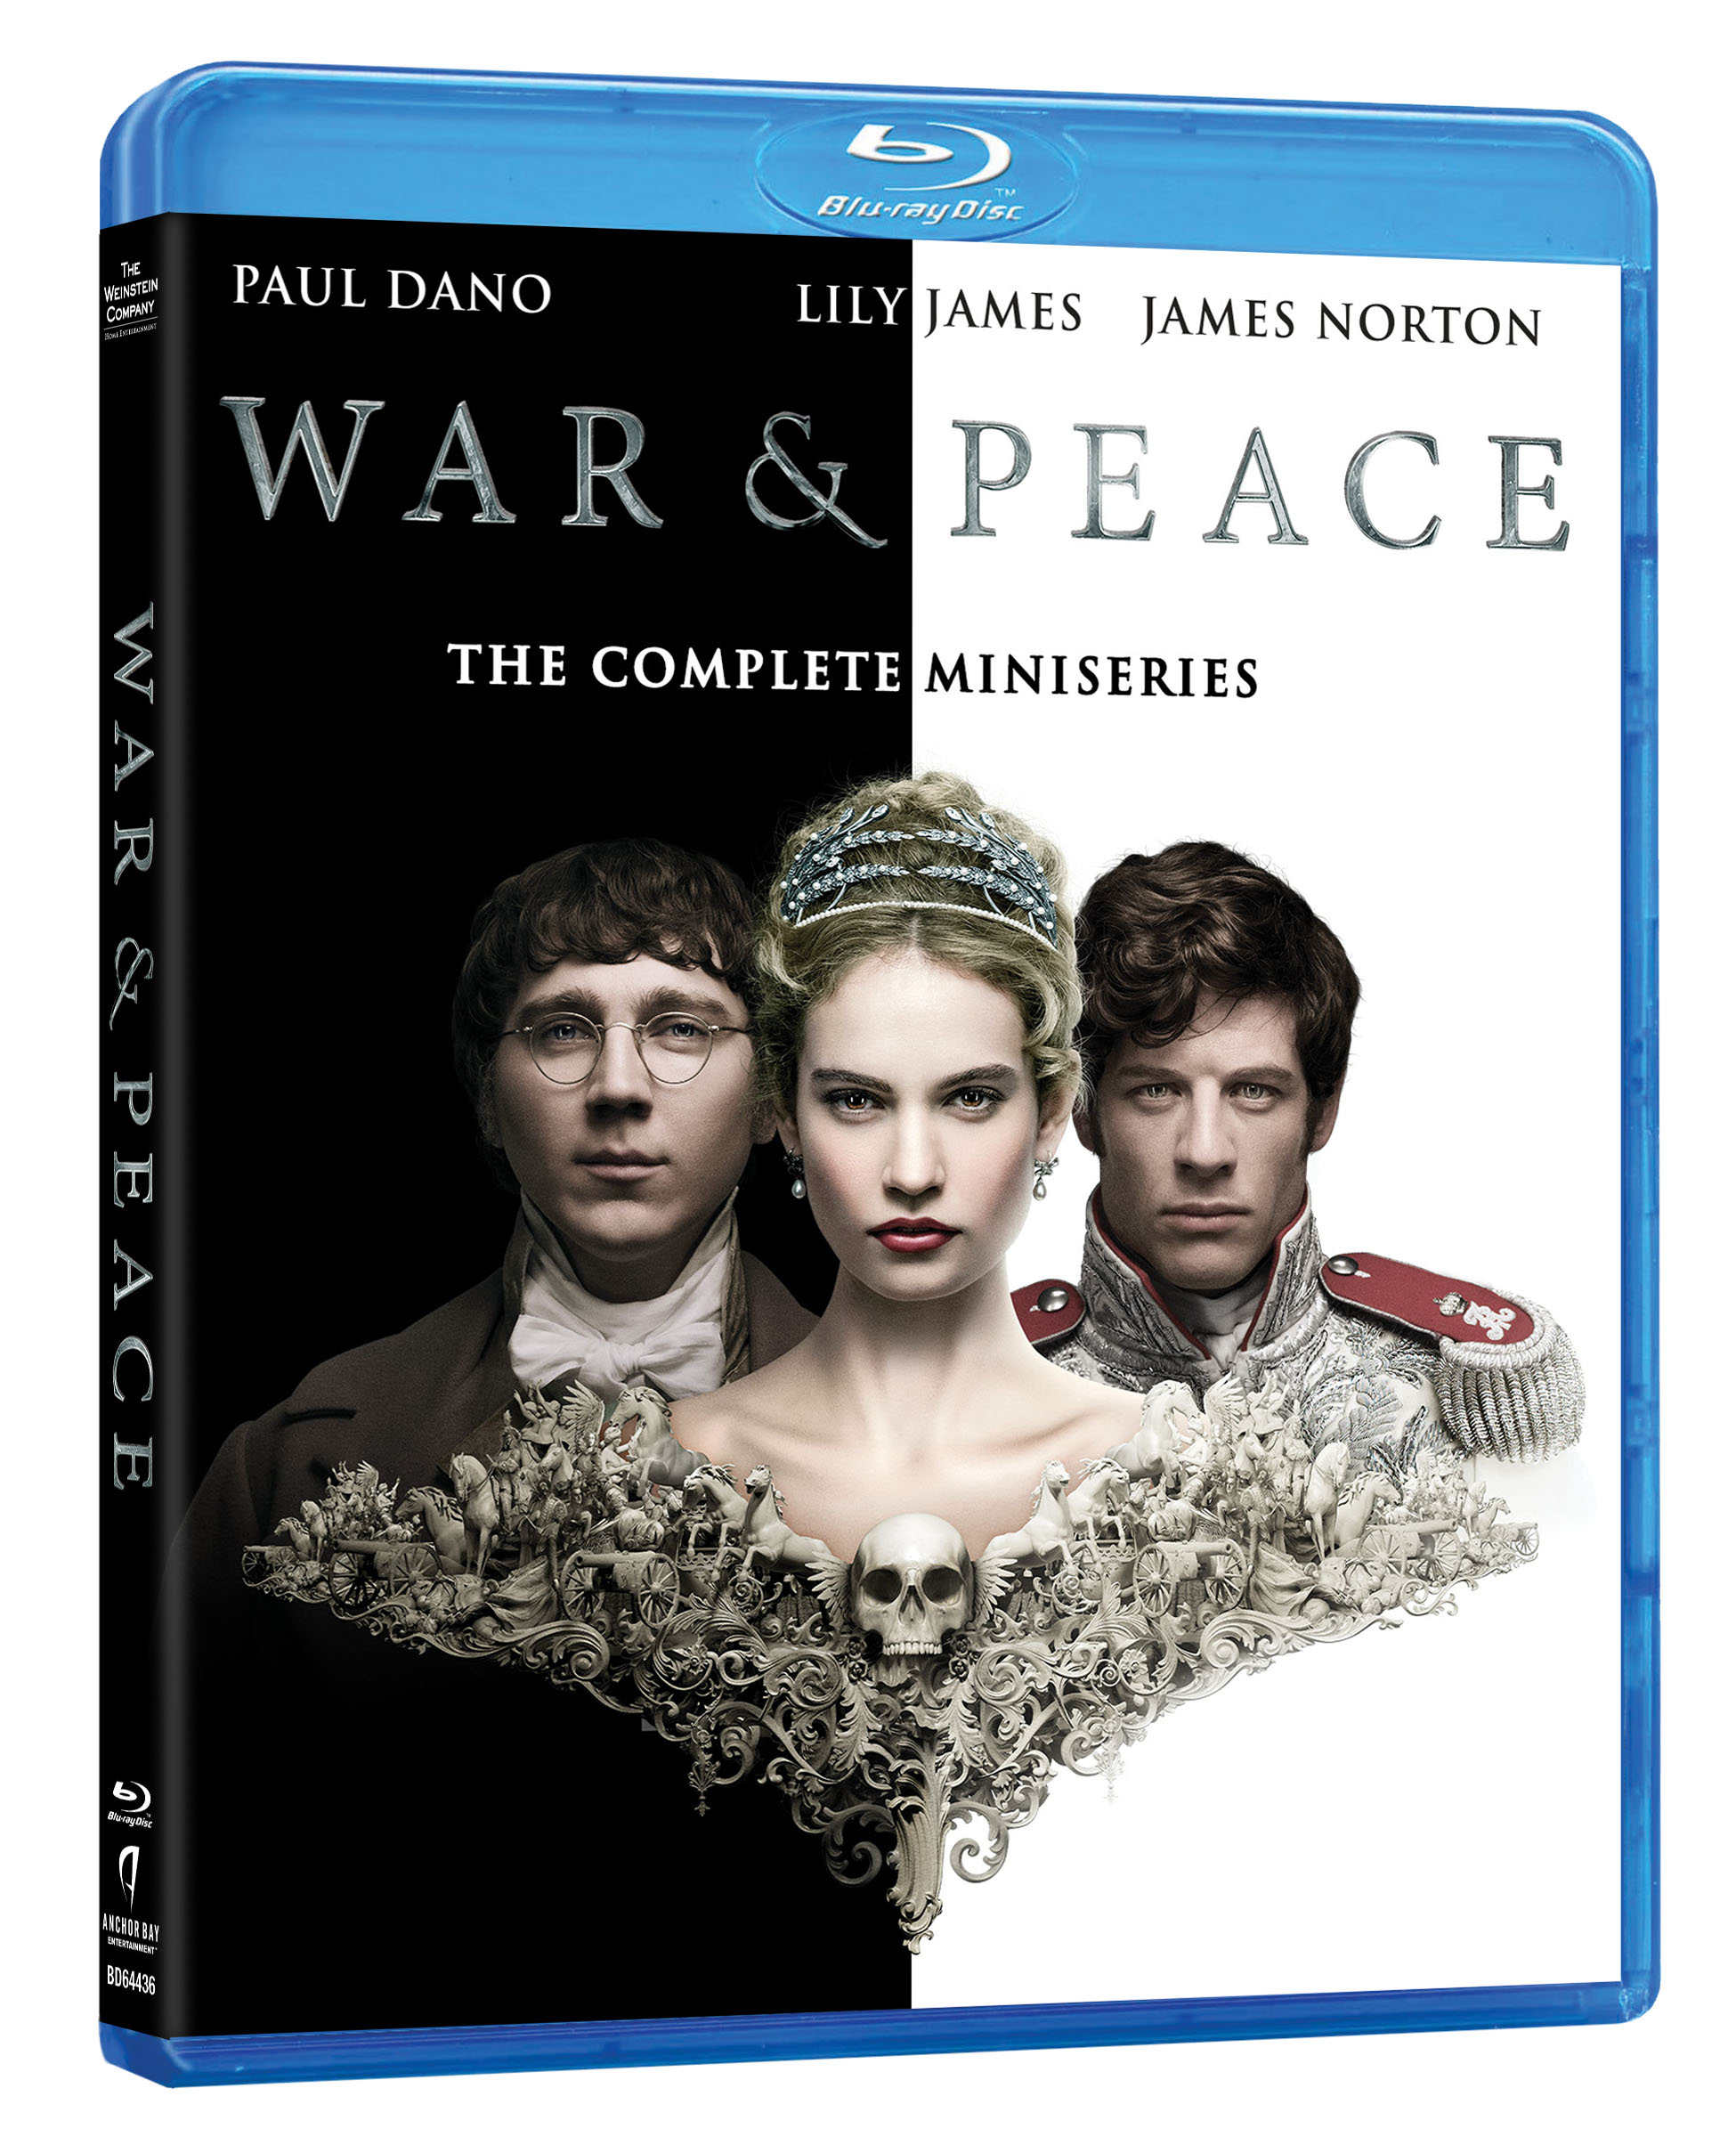 War & Peace Blu-ray Review